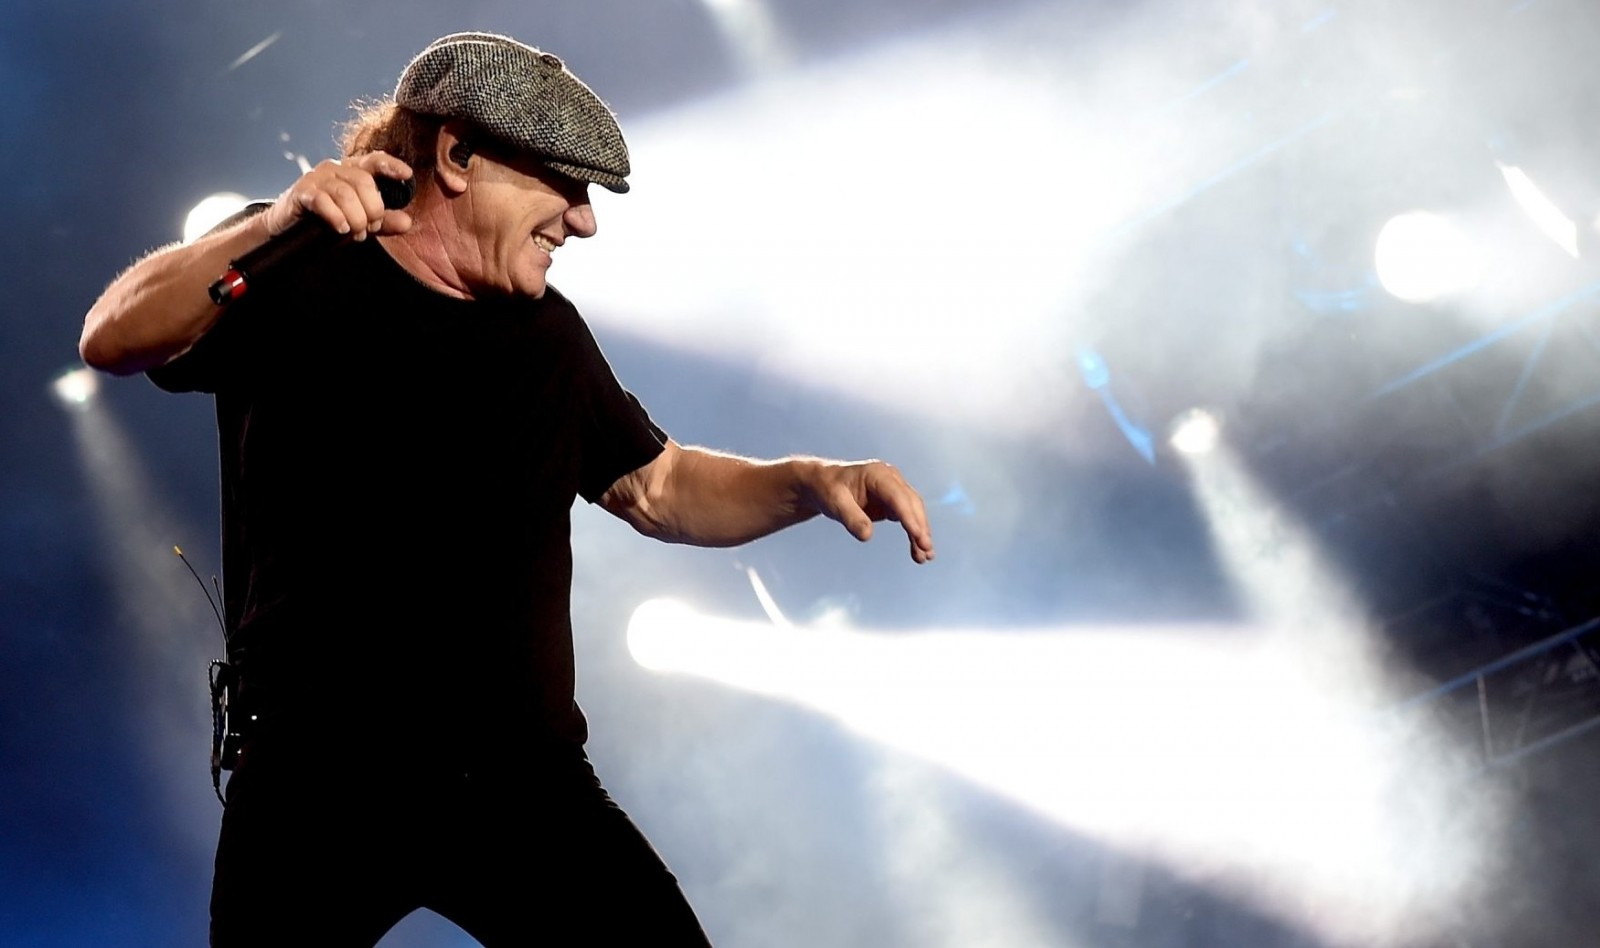 Doctors told AC/DC singer Brian Johnson that further touring would lead to permanent hearing loss.